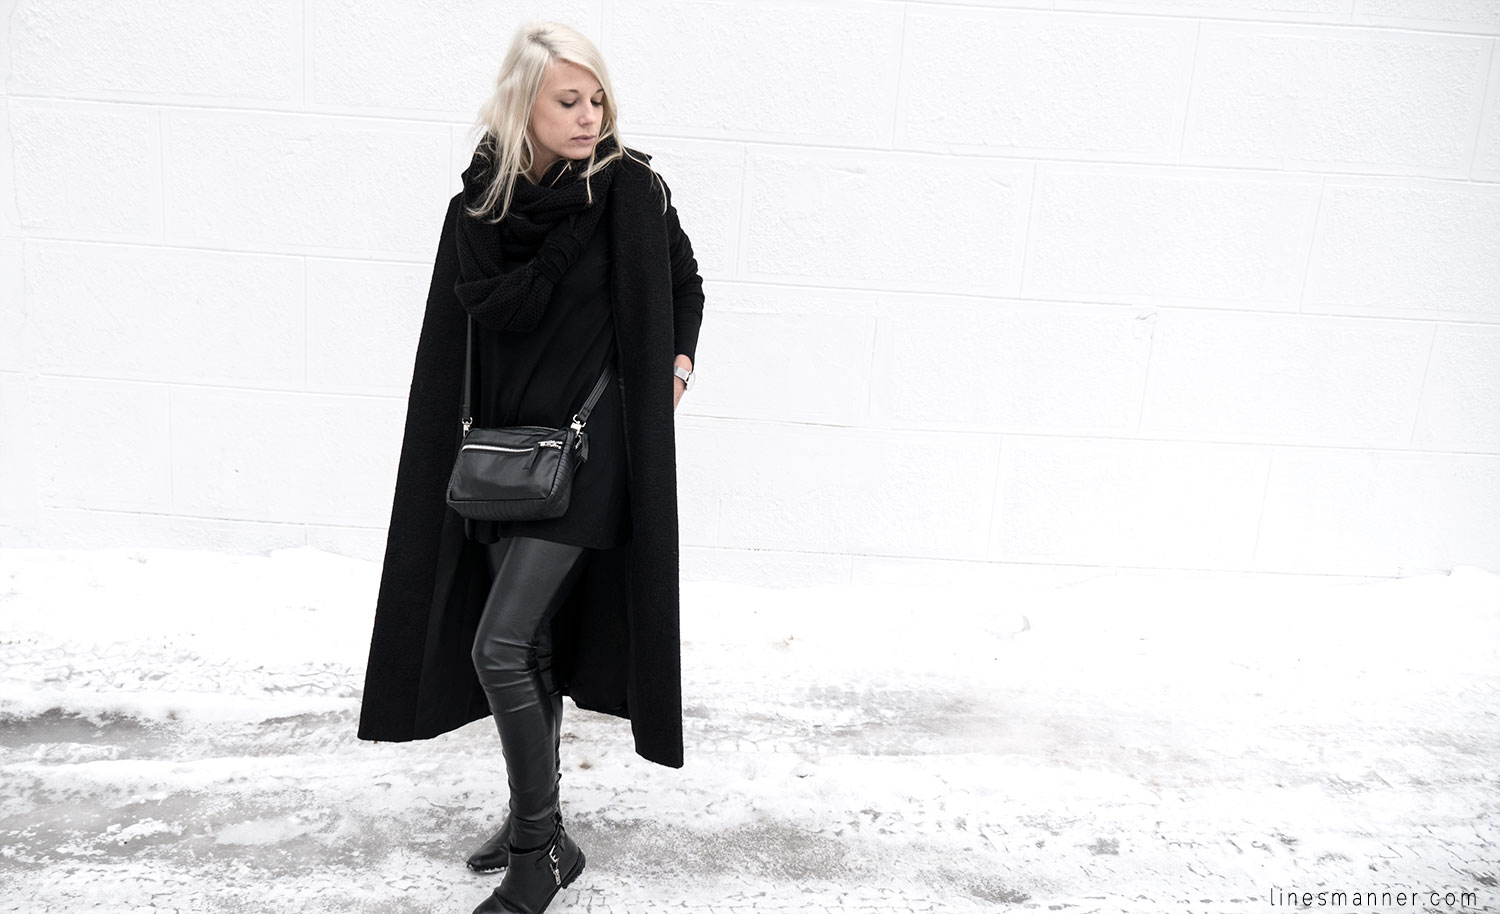 Lines-Manner-All_black_everything-monochrome-essentials-oversize-fit-textures-minimal-details-basics-staples-kayering-bundled-enveloped-silver-leather-20